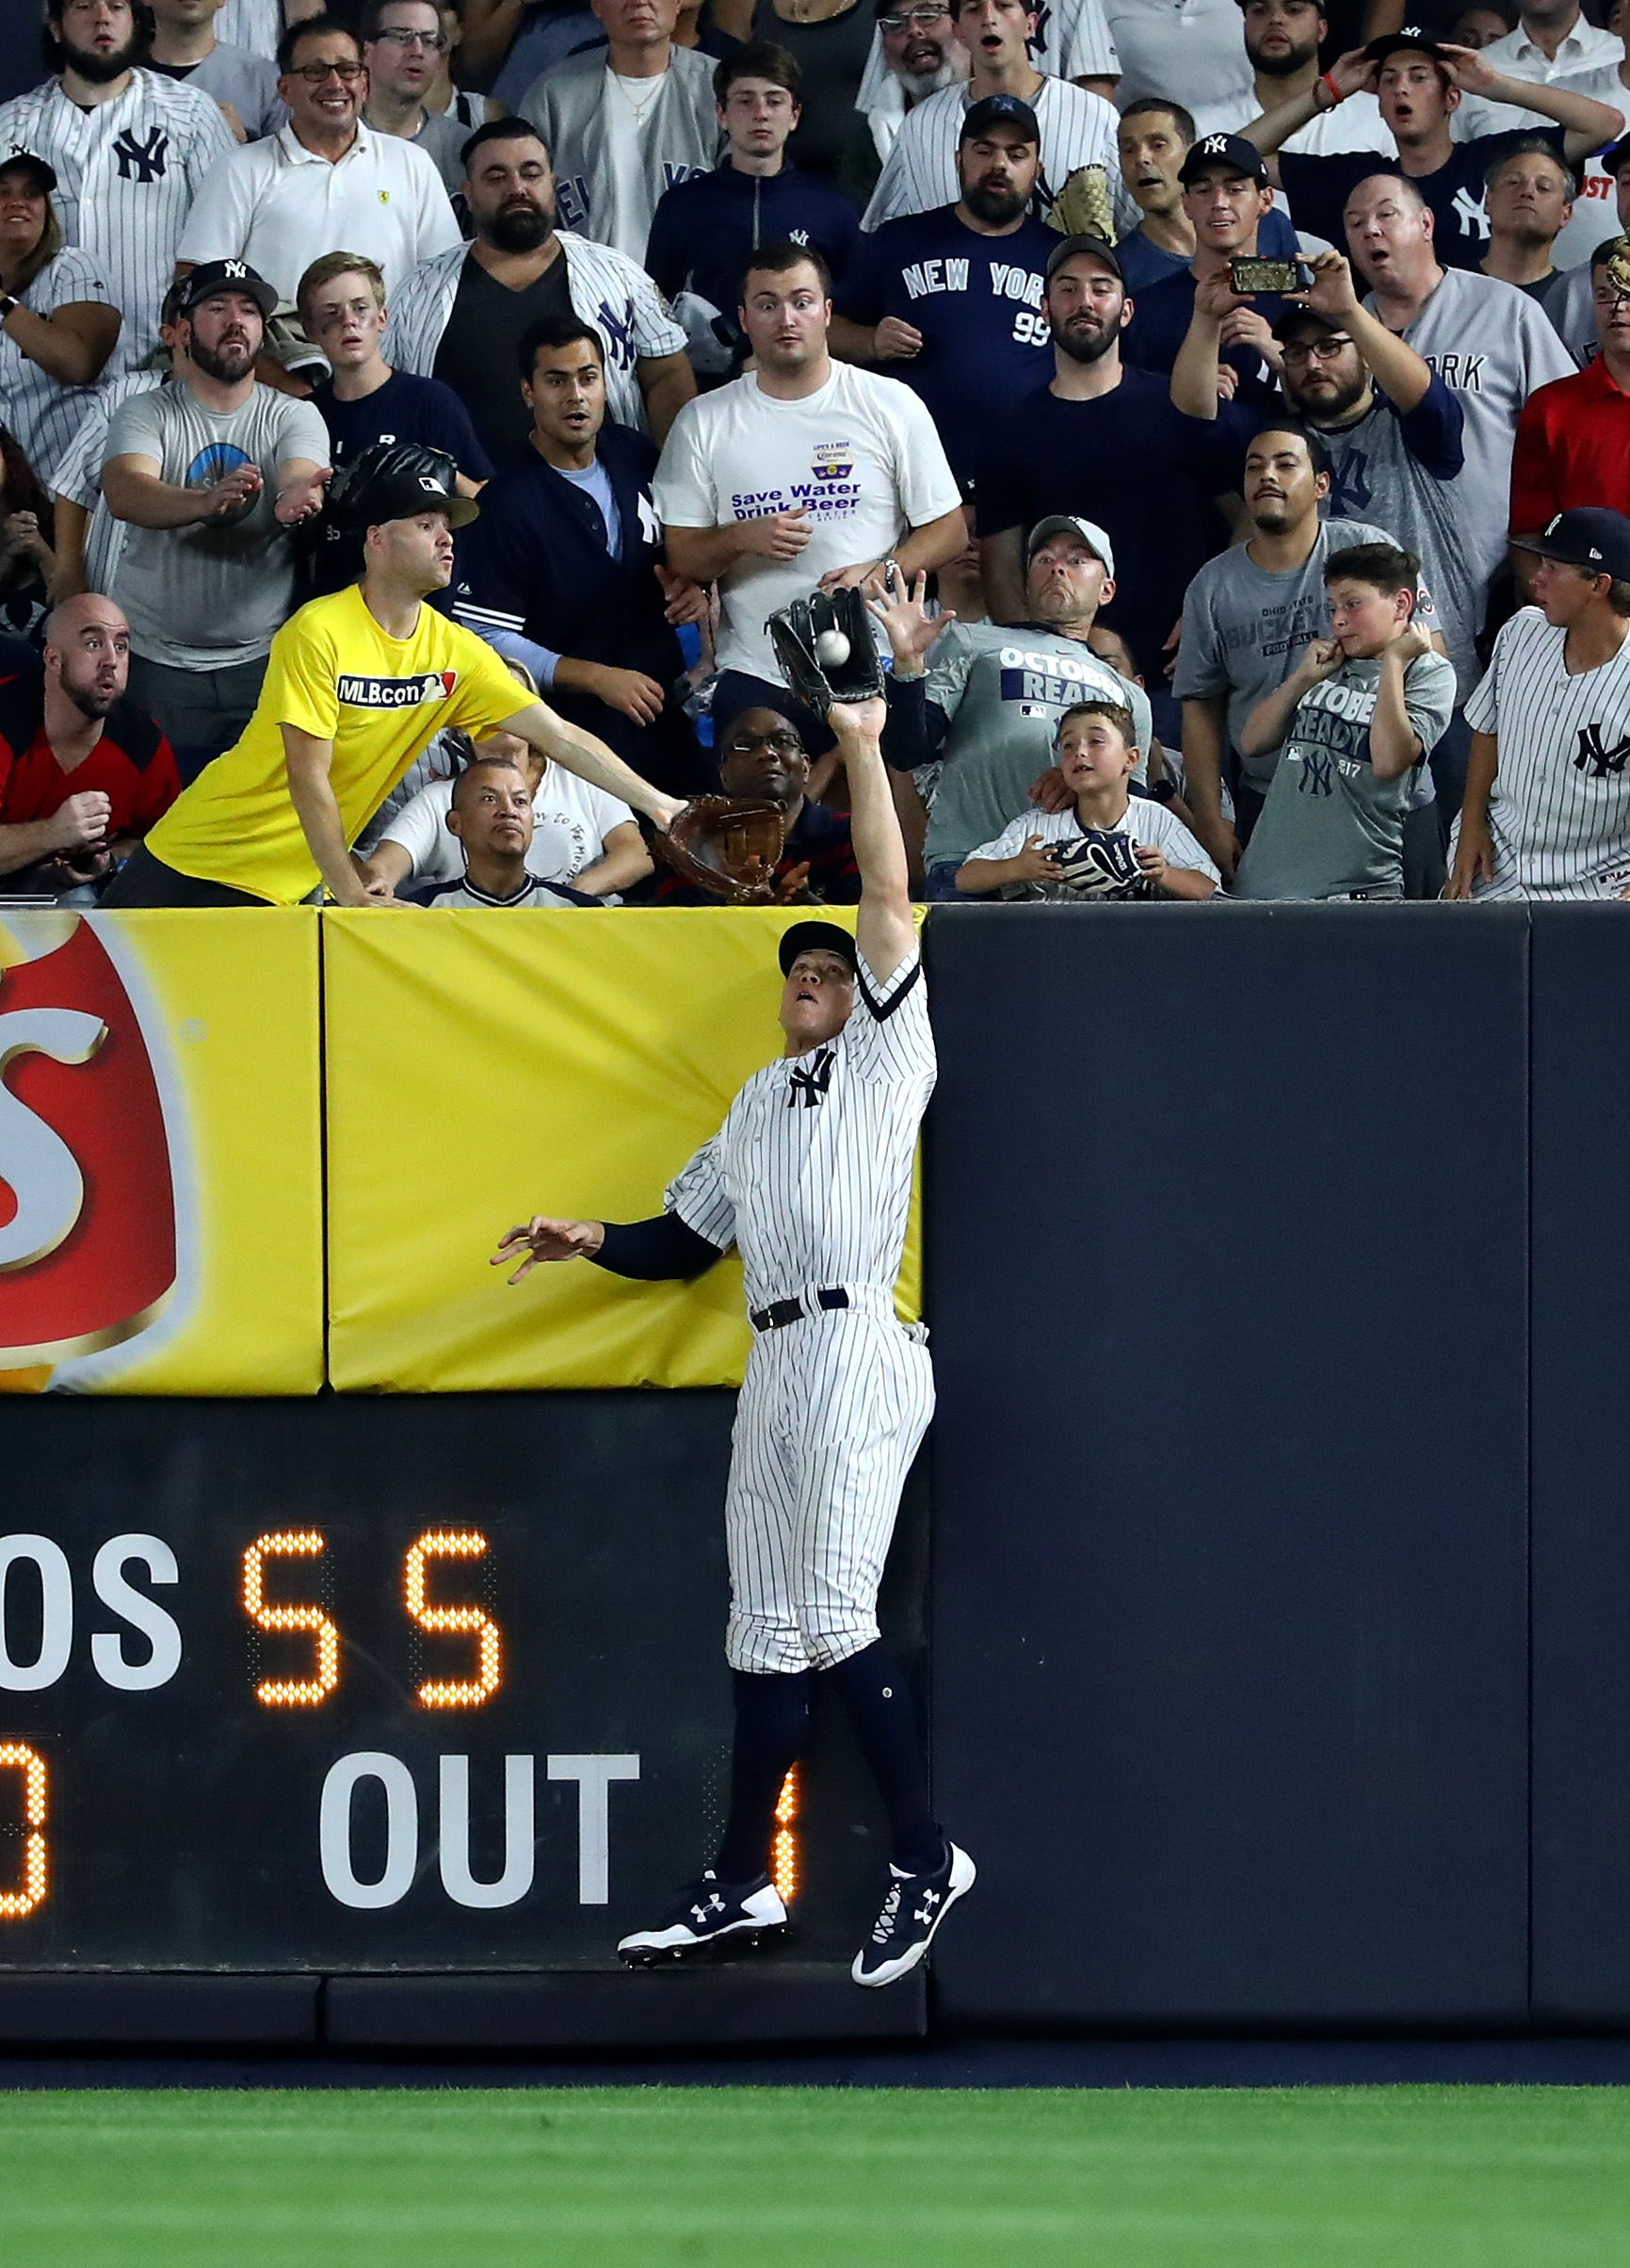 7 best crowd reactions to Aaron Judge's spectacular catch in Game 3 of the ALDS